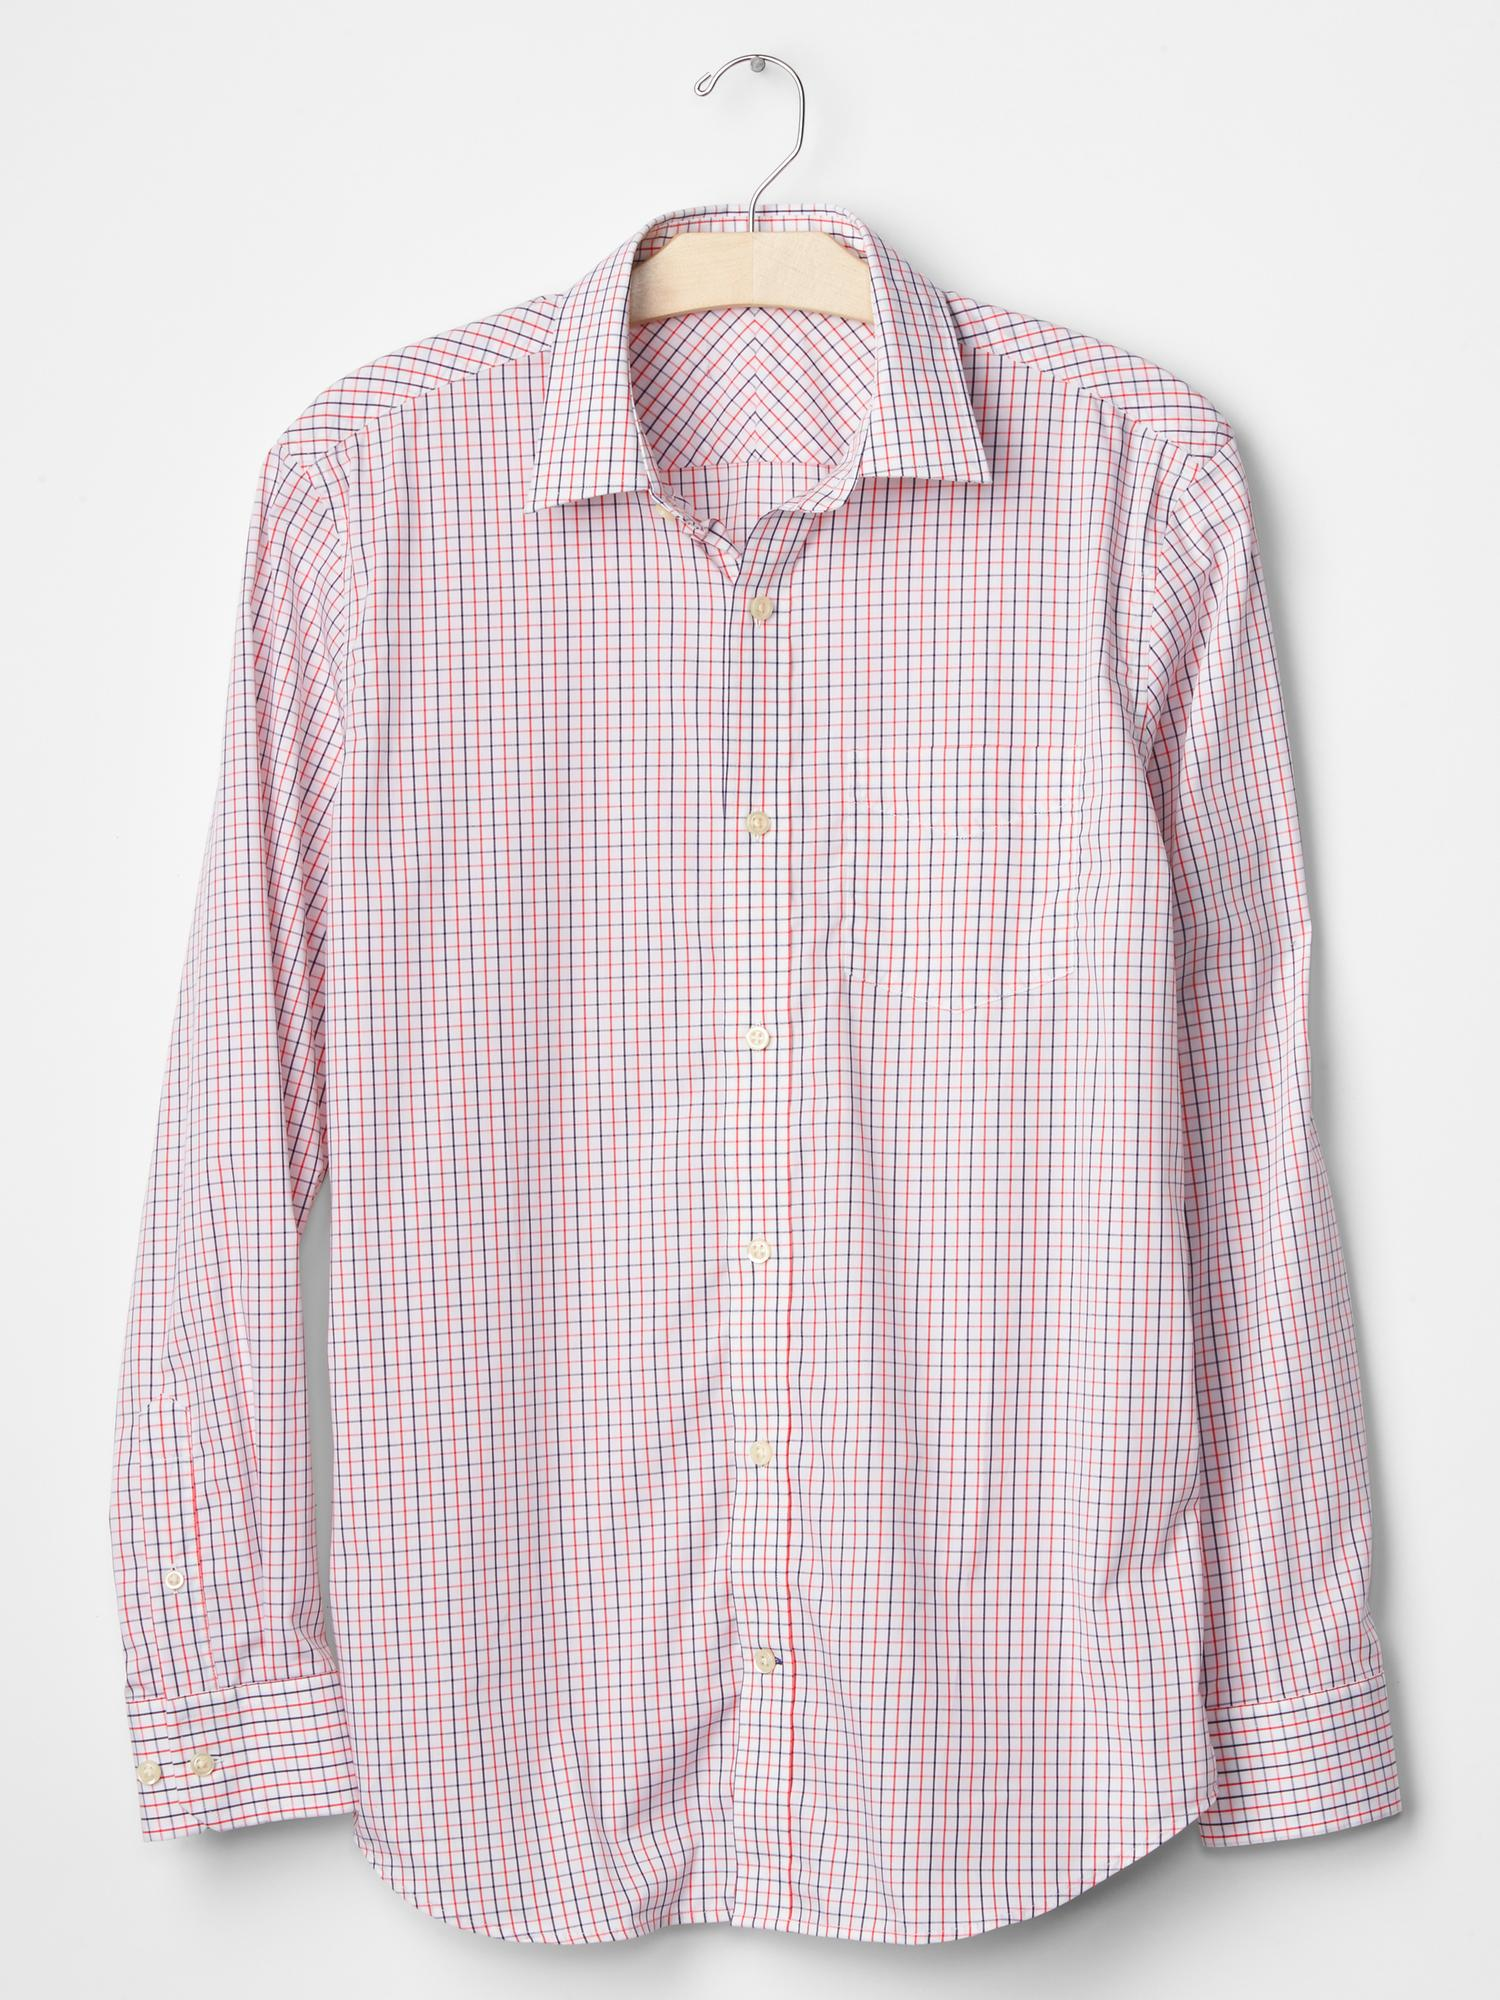 Gap wrinkle resistant windowpane standard fit shirt in red for Wrinkle resistant dress shirts